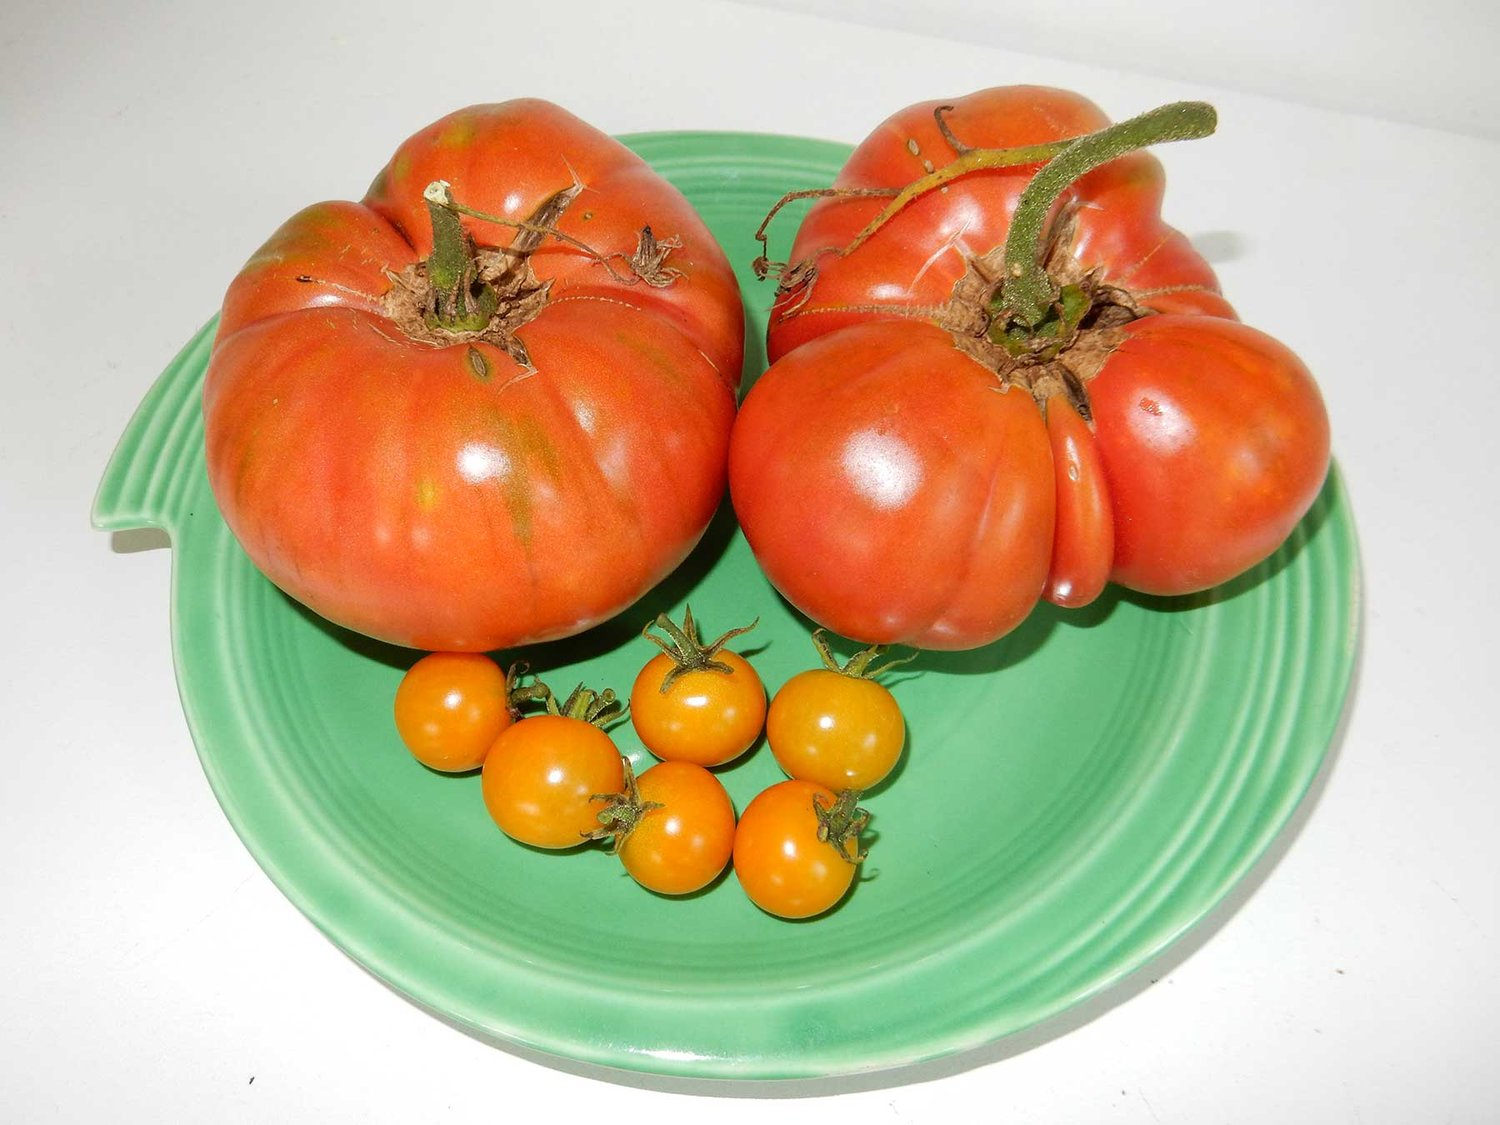 Sun Gold cherry and Brandywine tomatoes